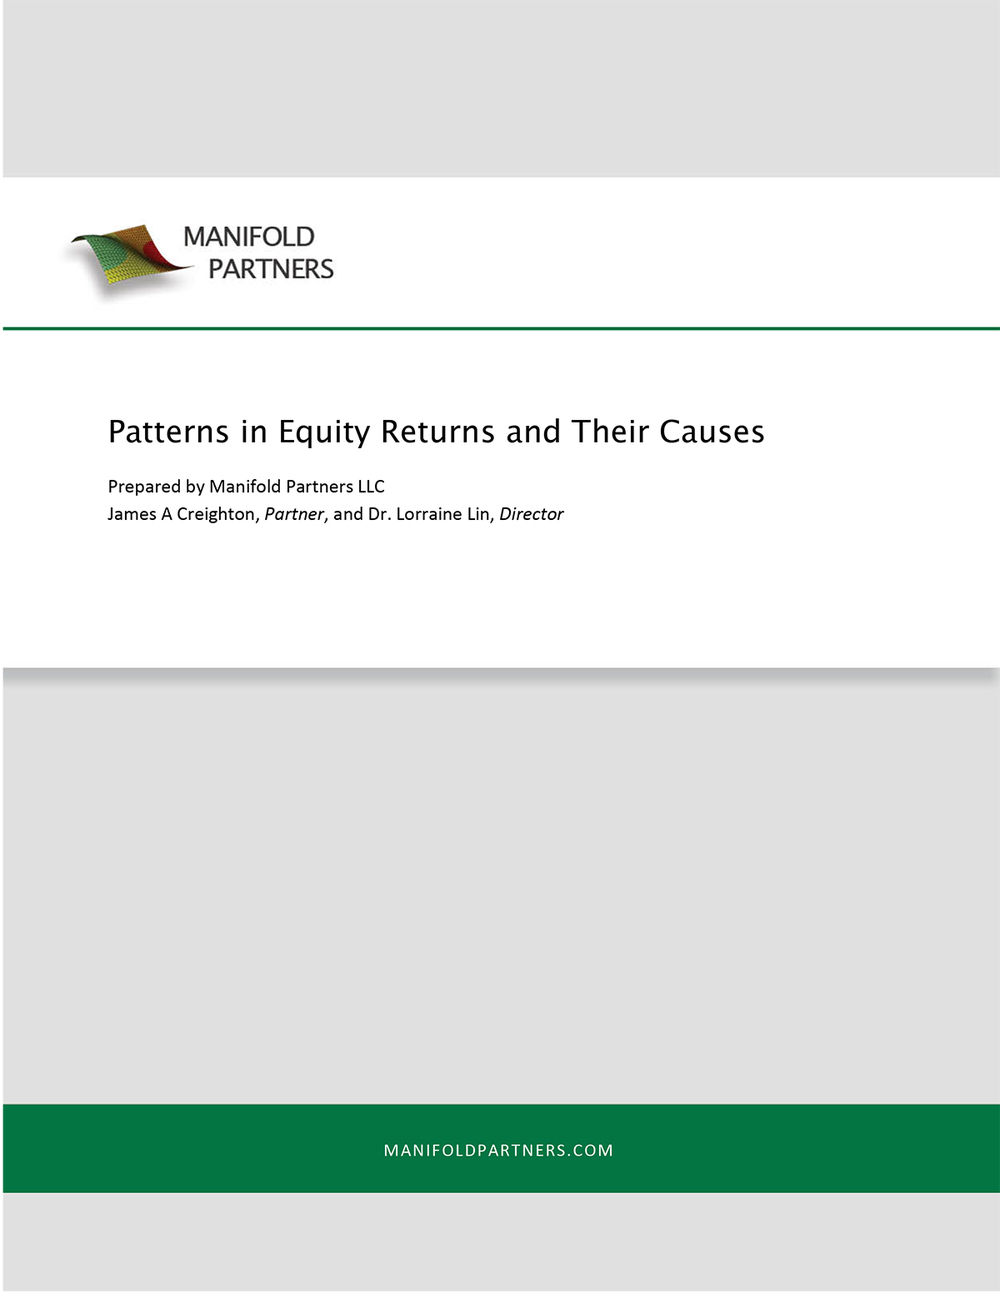 Patterns in Equity Returns and Their Causes